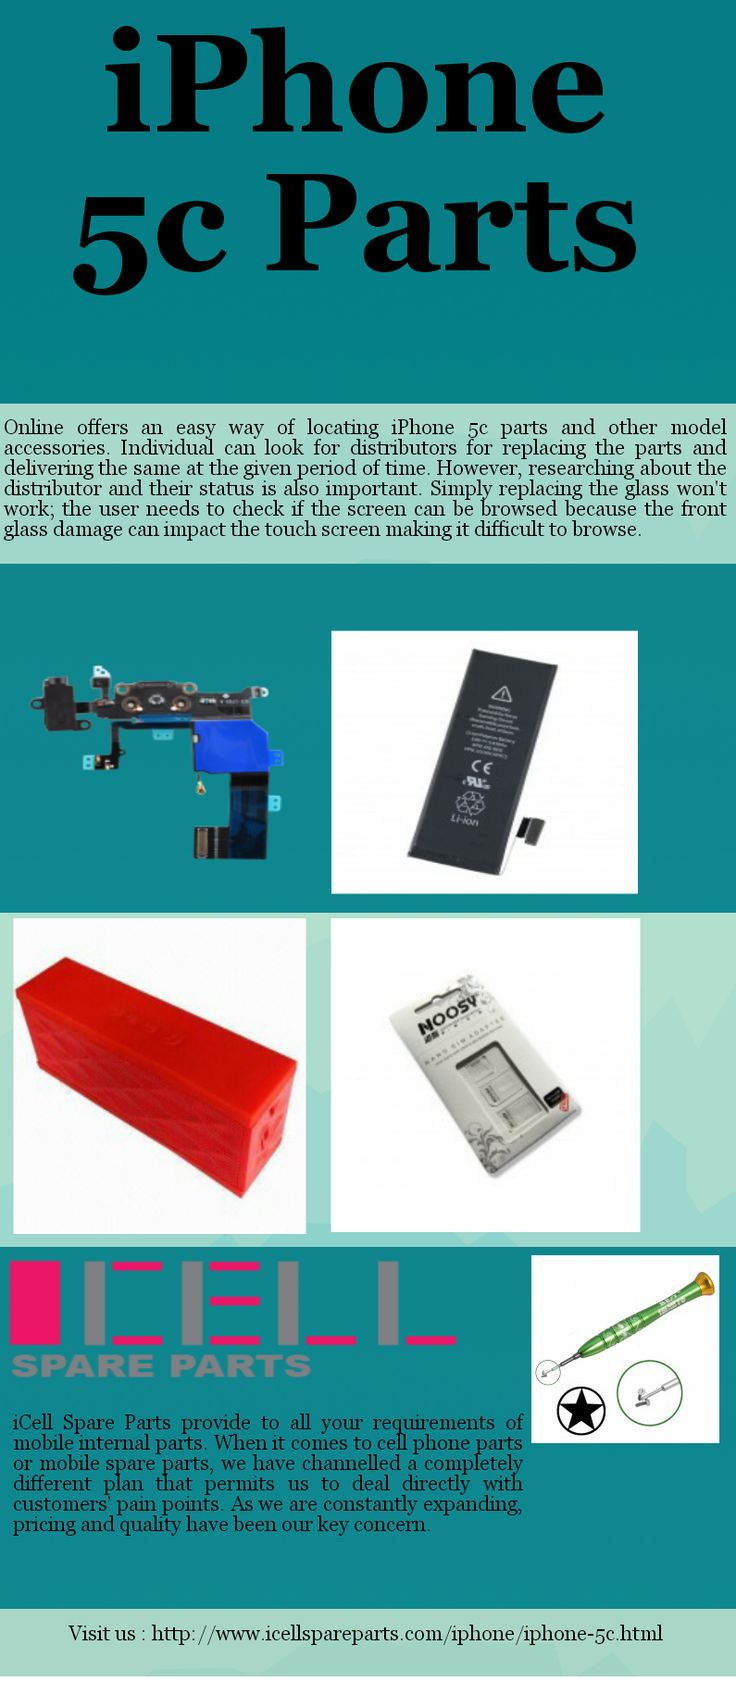 iCell spare parts is the best company for online screen replacement and other accessories of iPhone 5C at affordable prices.